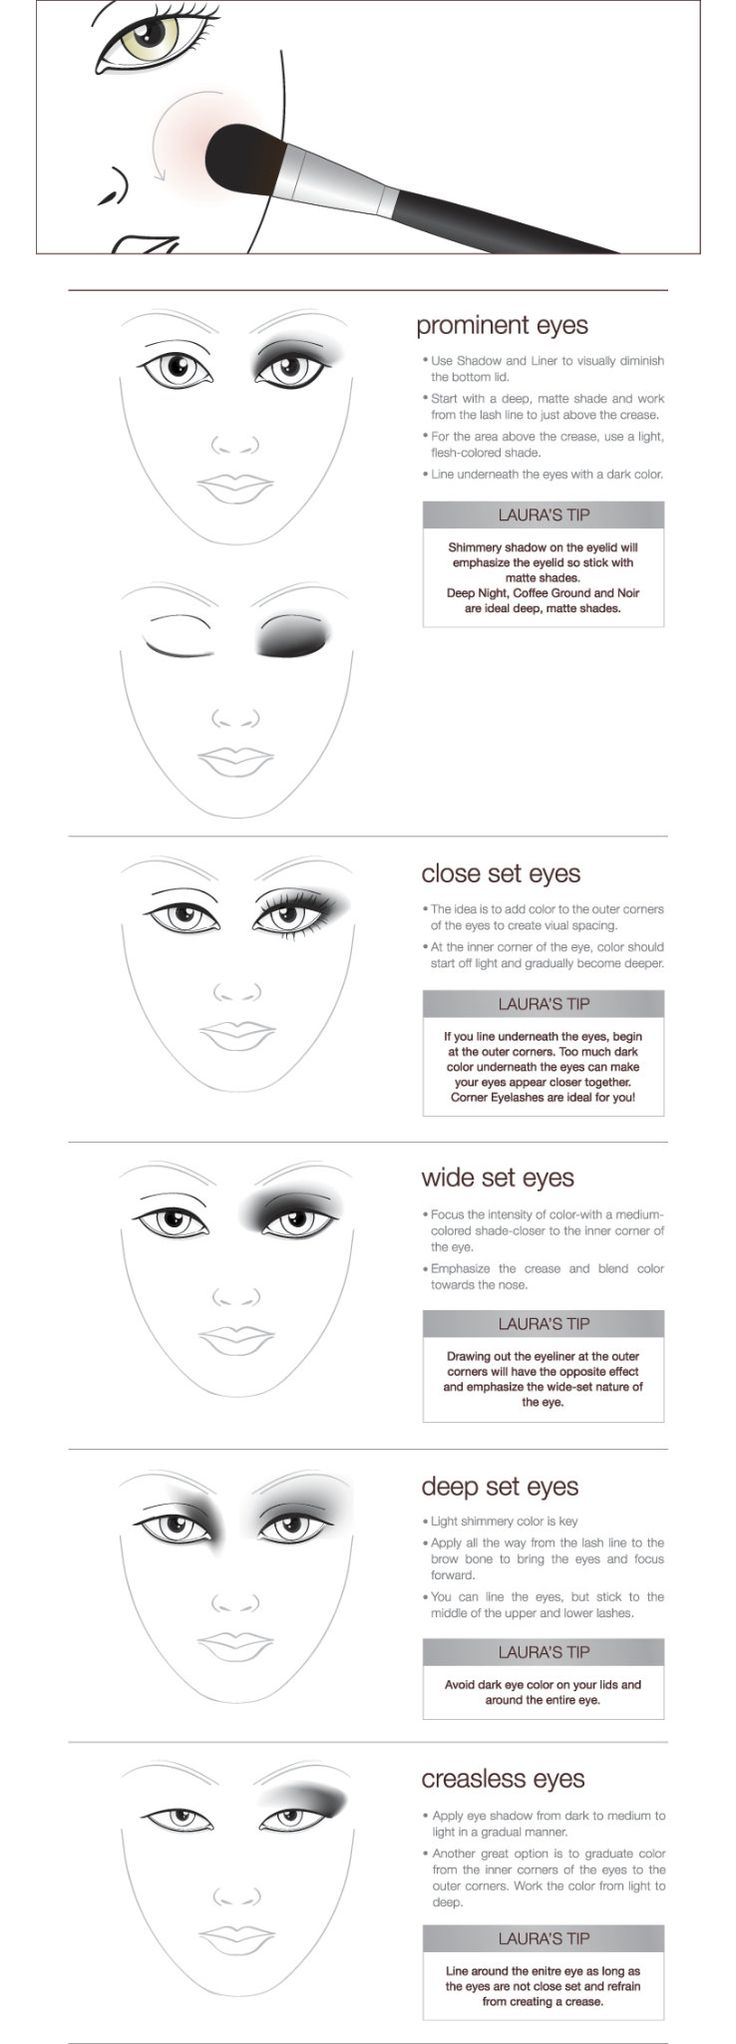 Selecting the correct eye shadow can enhance your gaze. Discover the perfect technique for your shape.